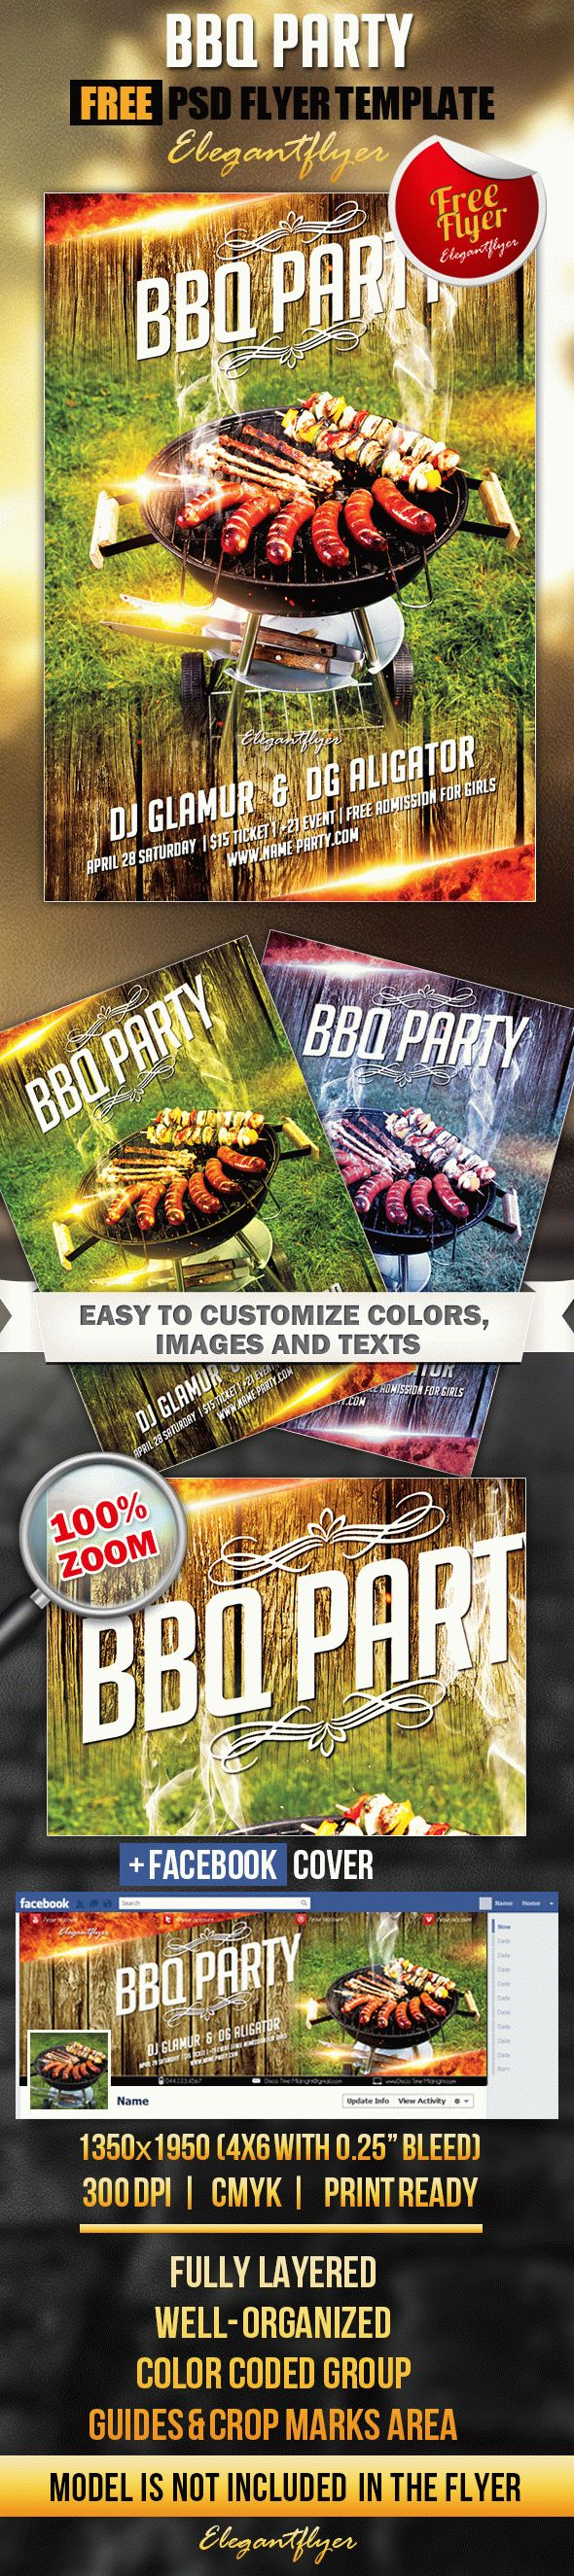 BBQ party – Free Flyer PSD Template